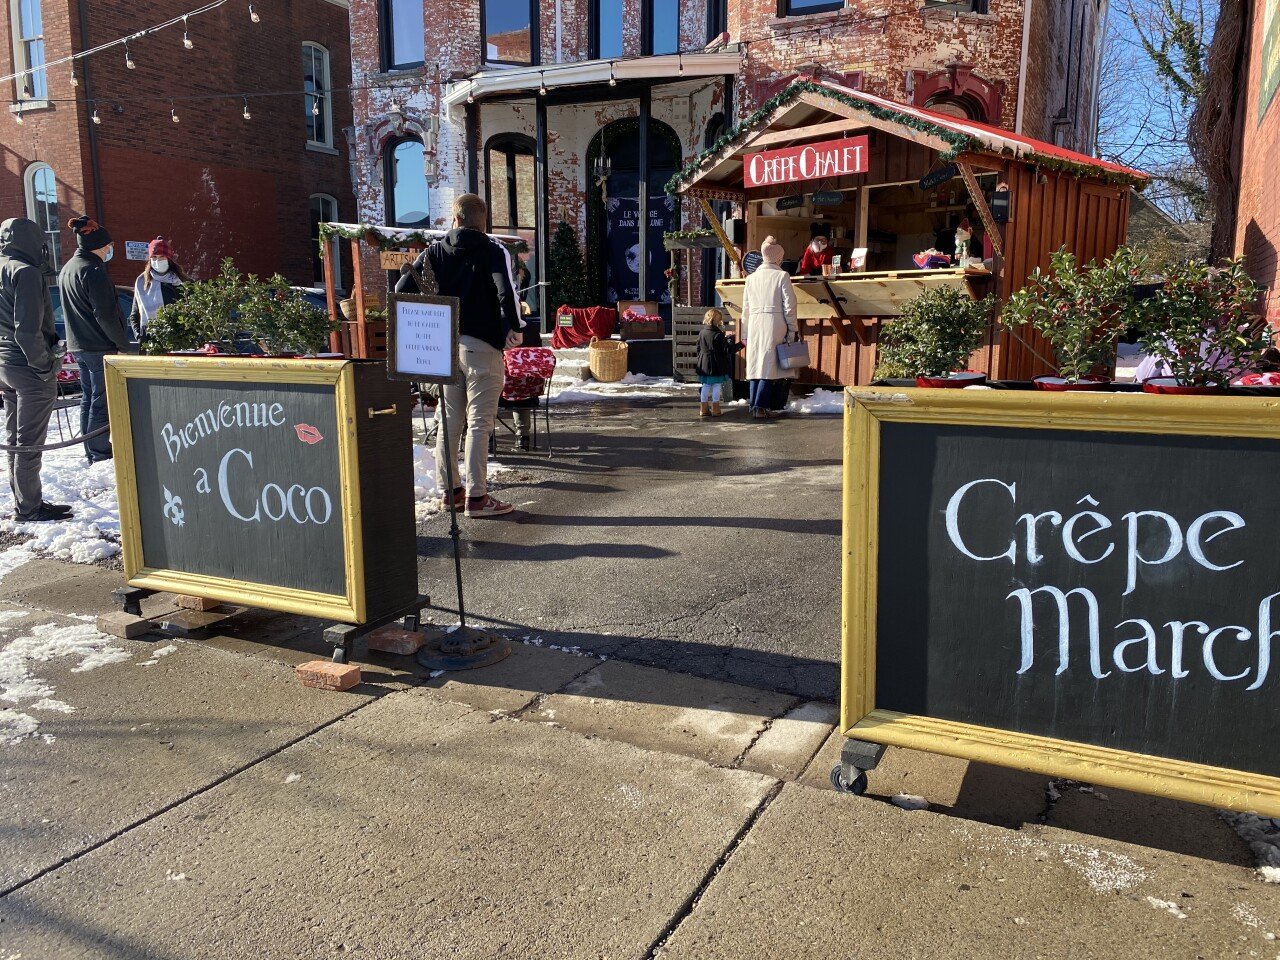 The Crepe Chalet at Coco is open Wednesday-Sunday